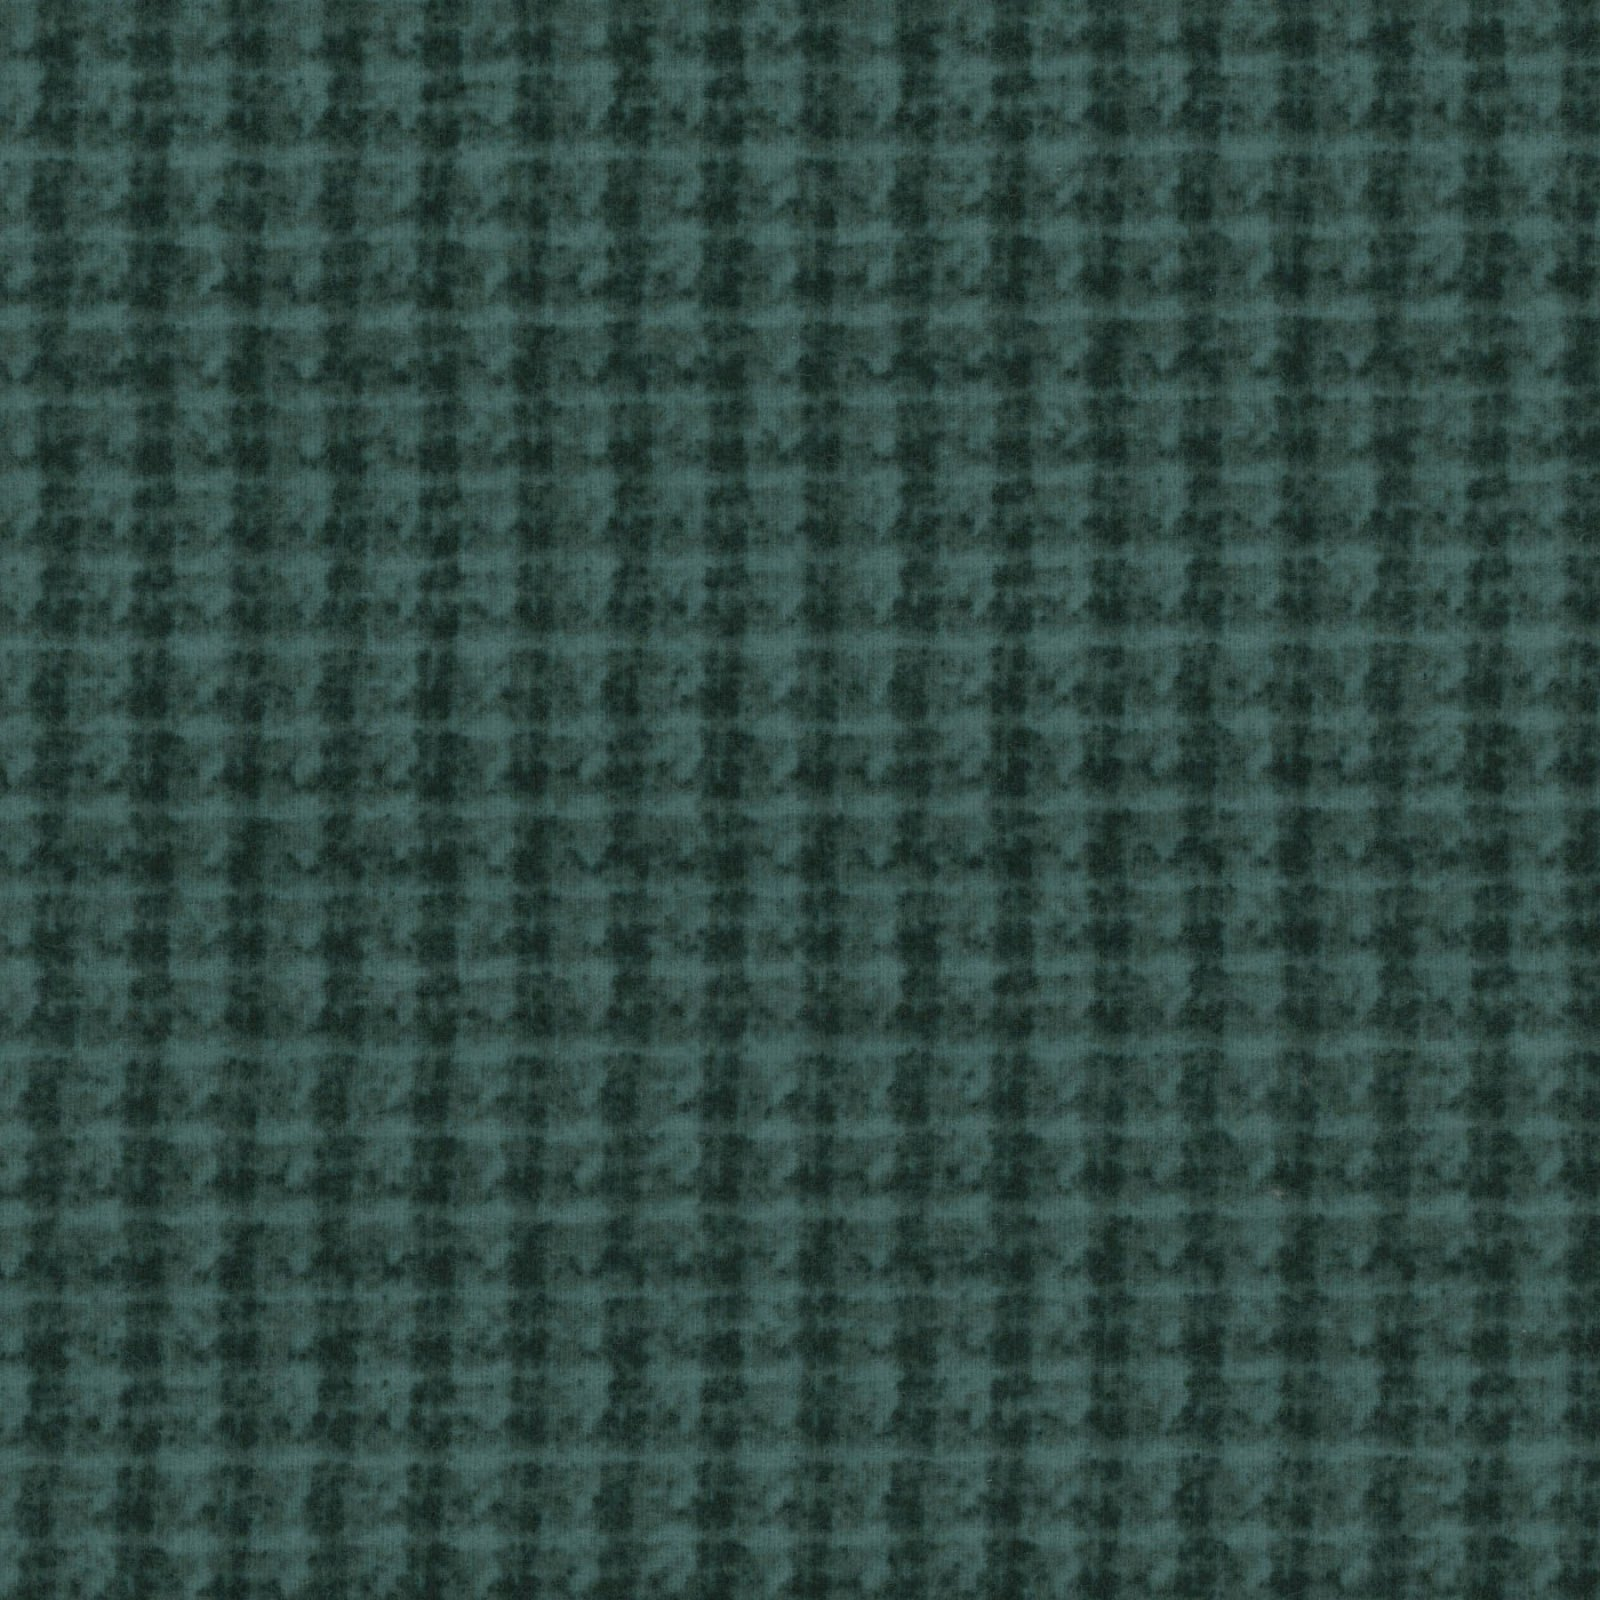 Woolies Flannel Double Weave Teal (MASF18504-BG)